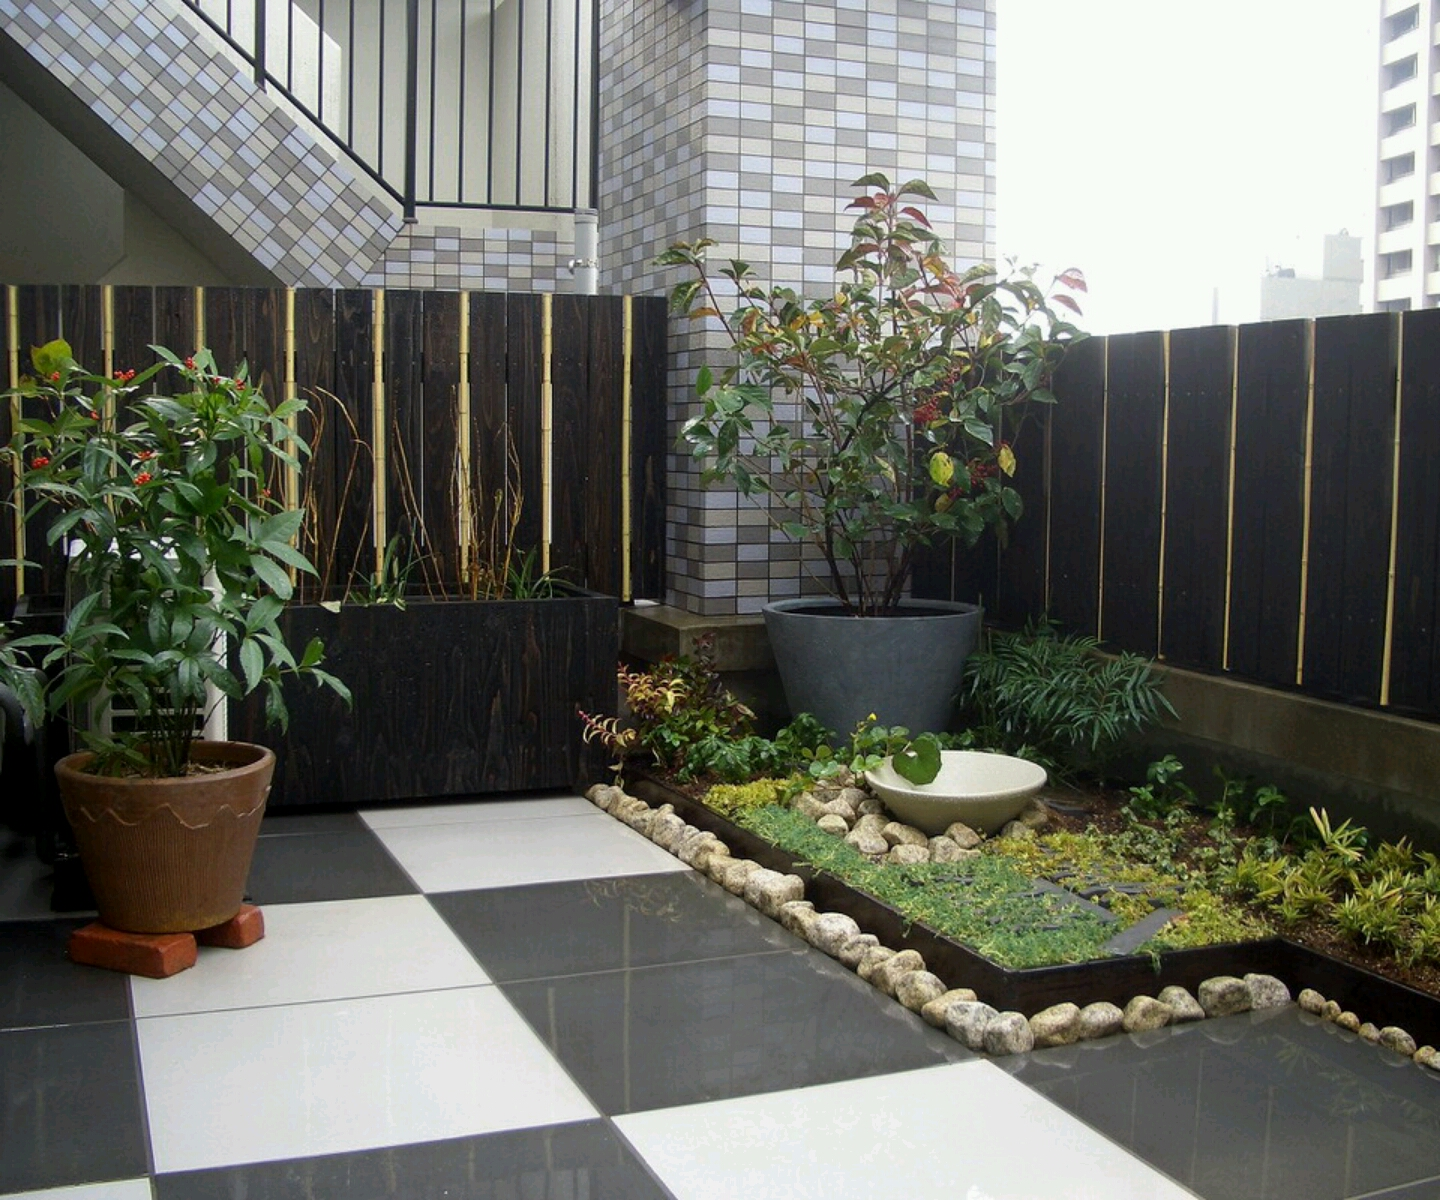 Ultra modern garden design inspiration interior designs for Latest home garden design